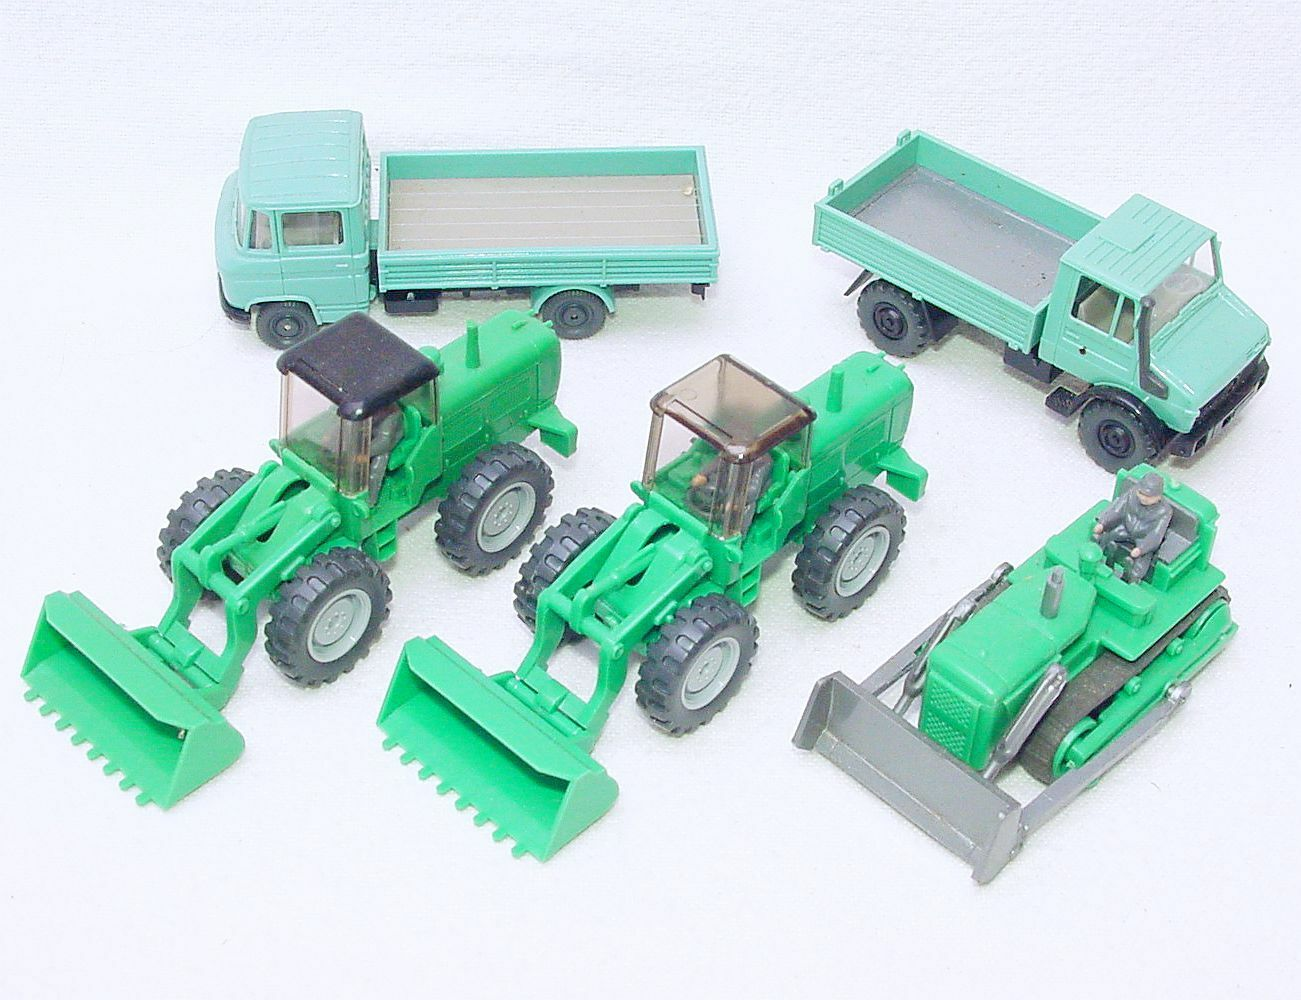 5x Wiking HO 1 87 SHOVEL DIGGER + UNIMOG TRACTOR LORRY Construction Site Lot NM